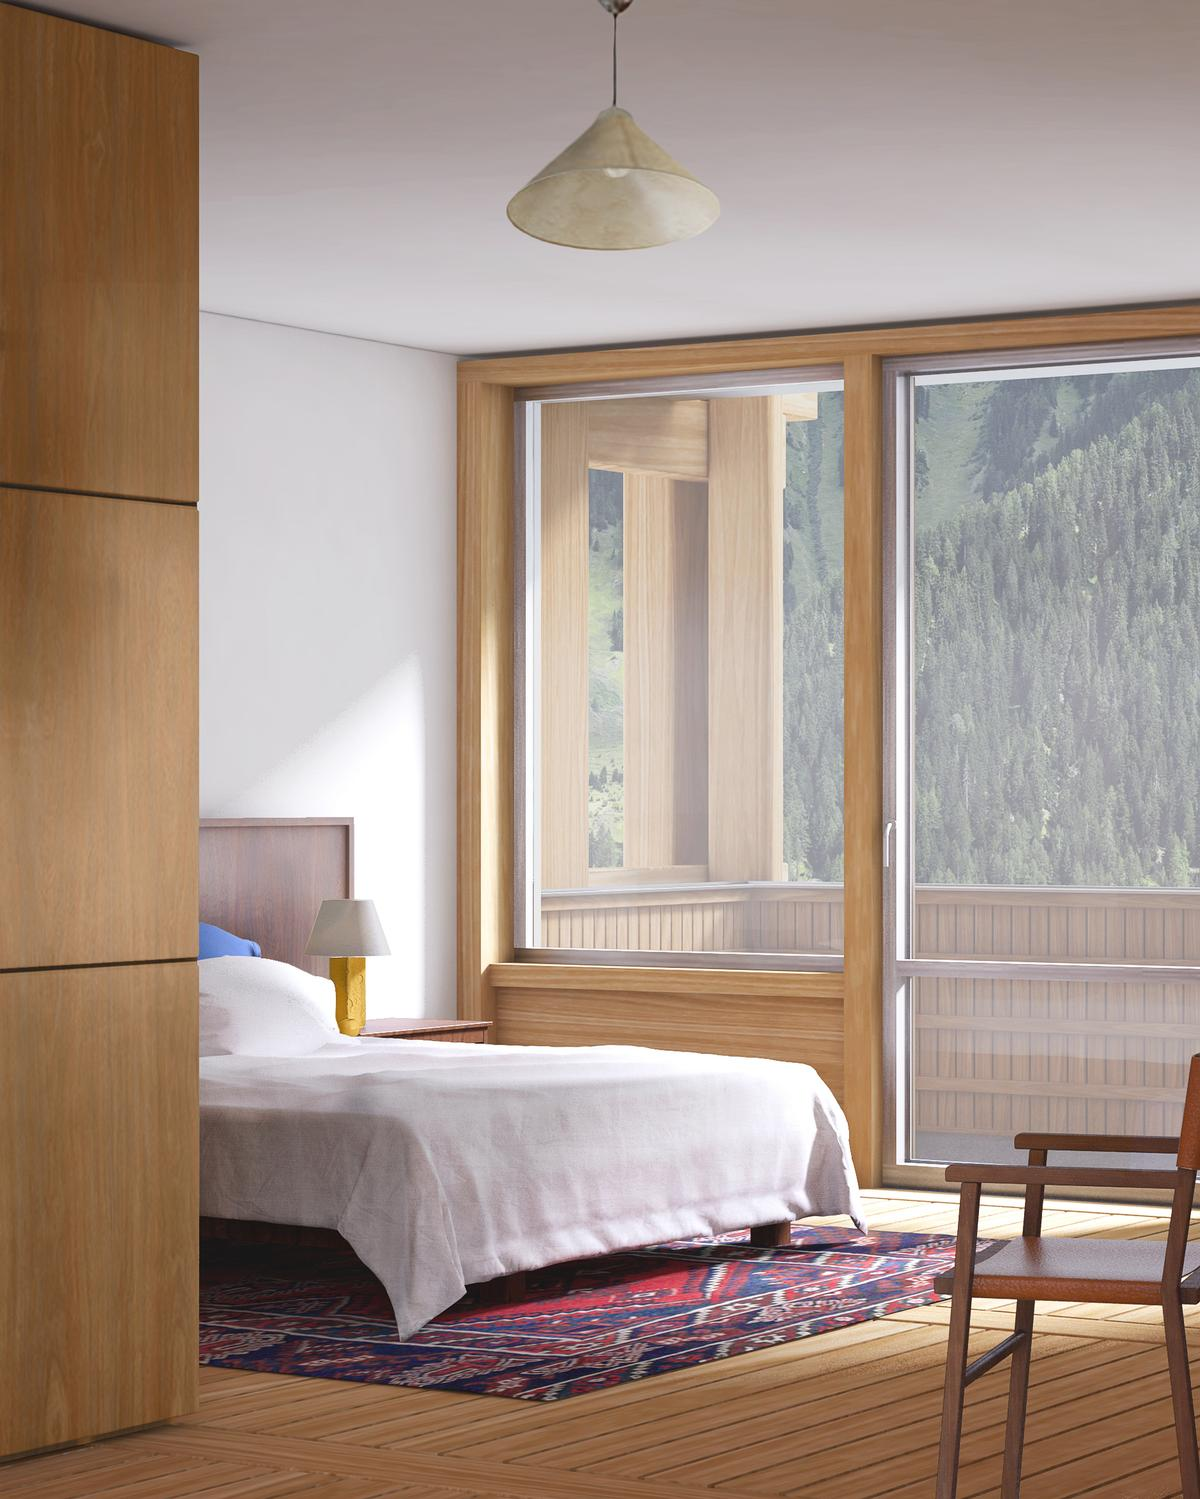 To attract a diverse clientele, some guest rooms will be more simple and affordable while others will be more spacious and luxurious / Hesselbrand